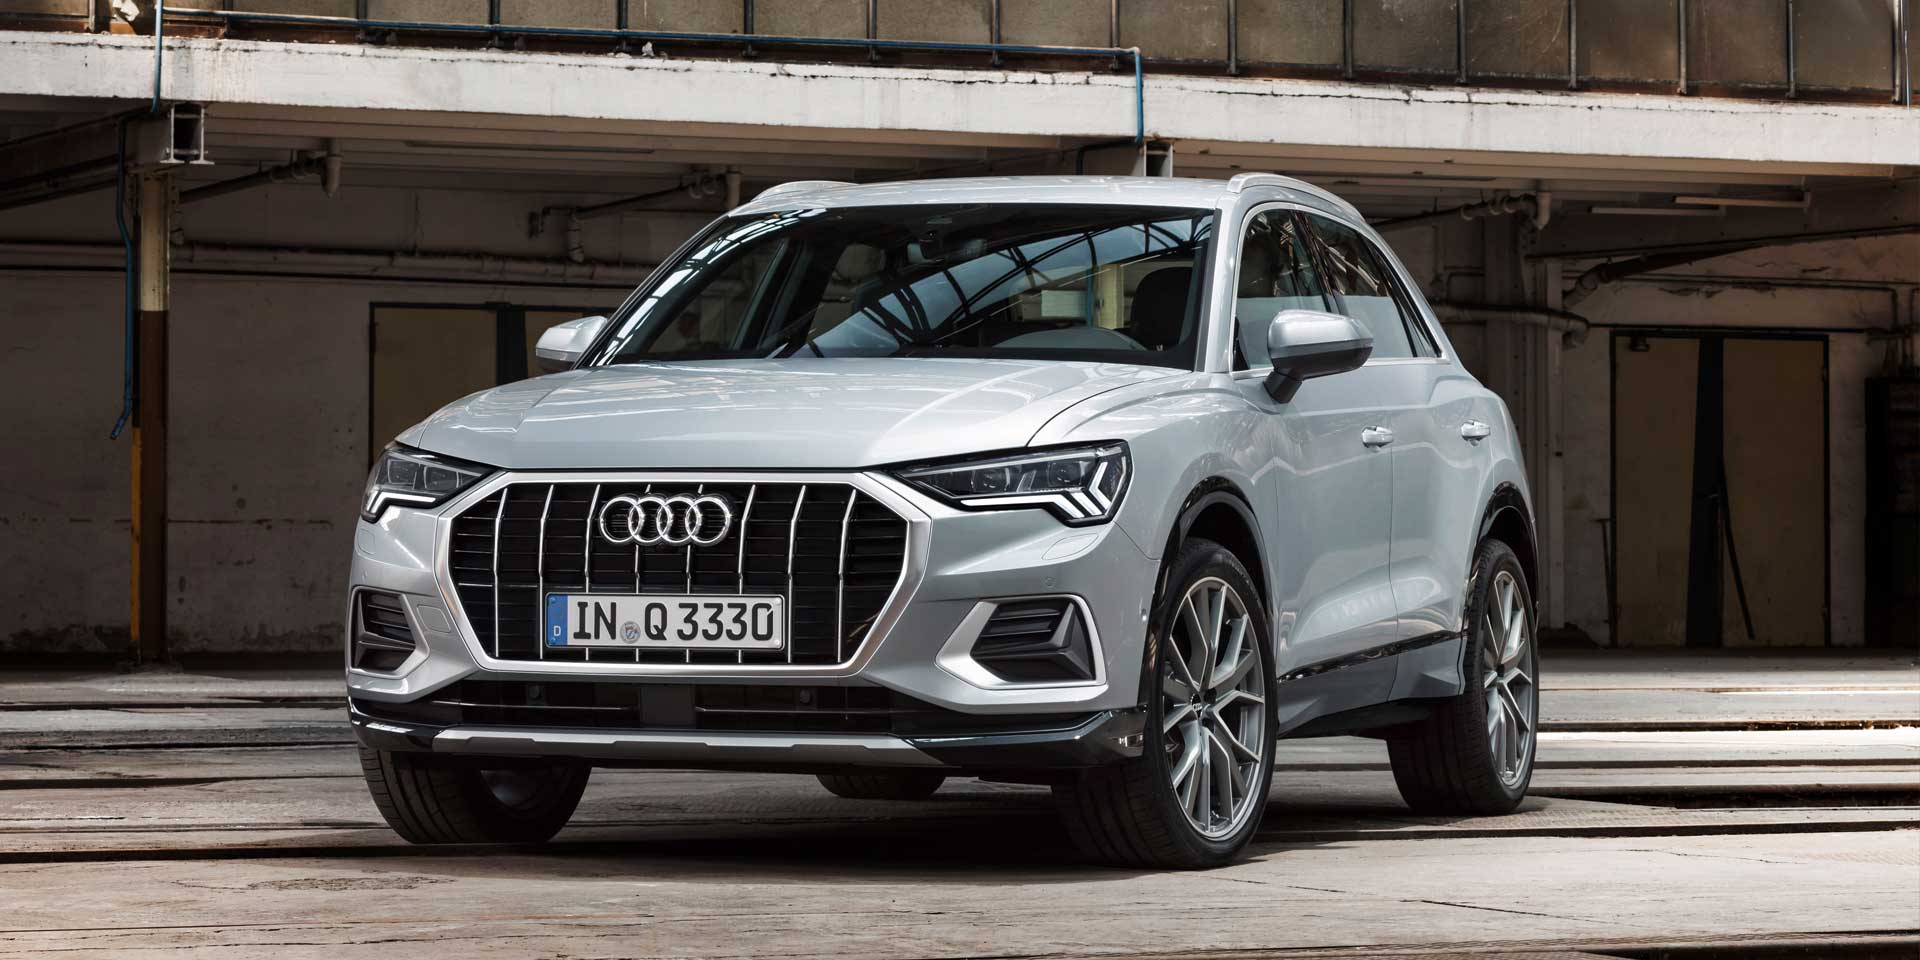 2019 Audi Q3 Vehicles On Display Chicago Auto Show